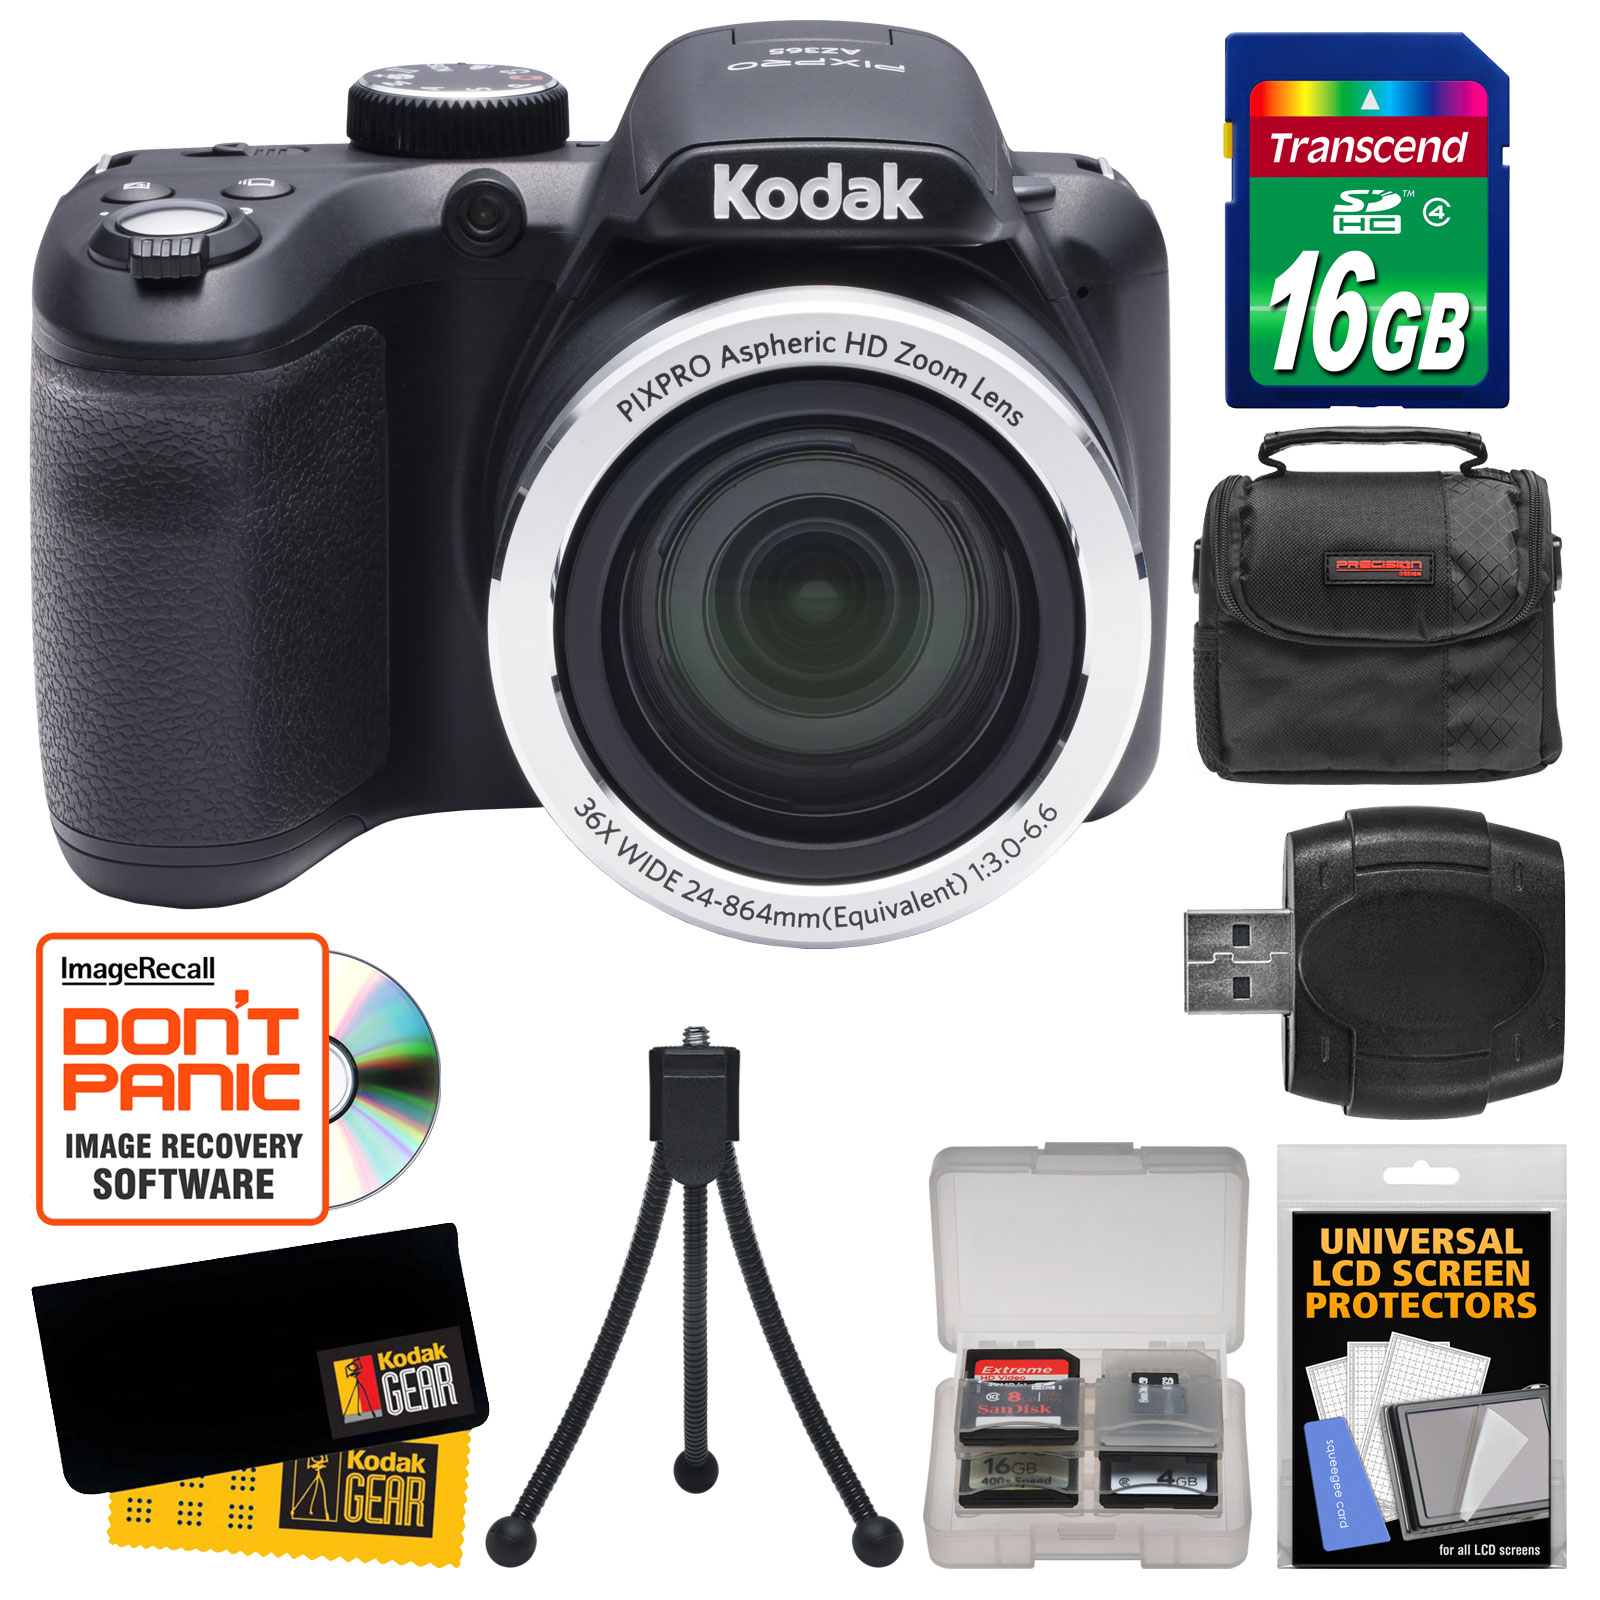 Kodak PixPro AZ365 Astro Zoom Digital Camera with 16GB Card + Case + Flex Tripod + Kit